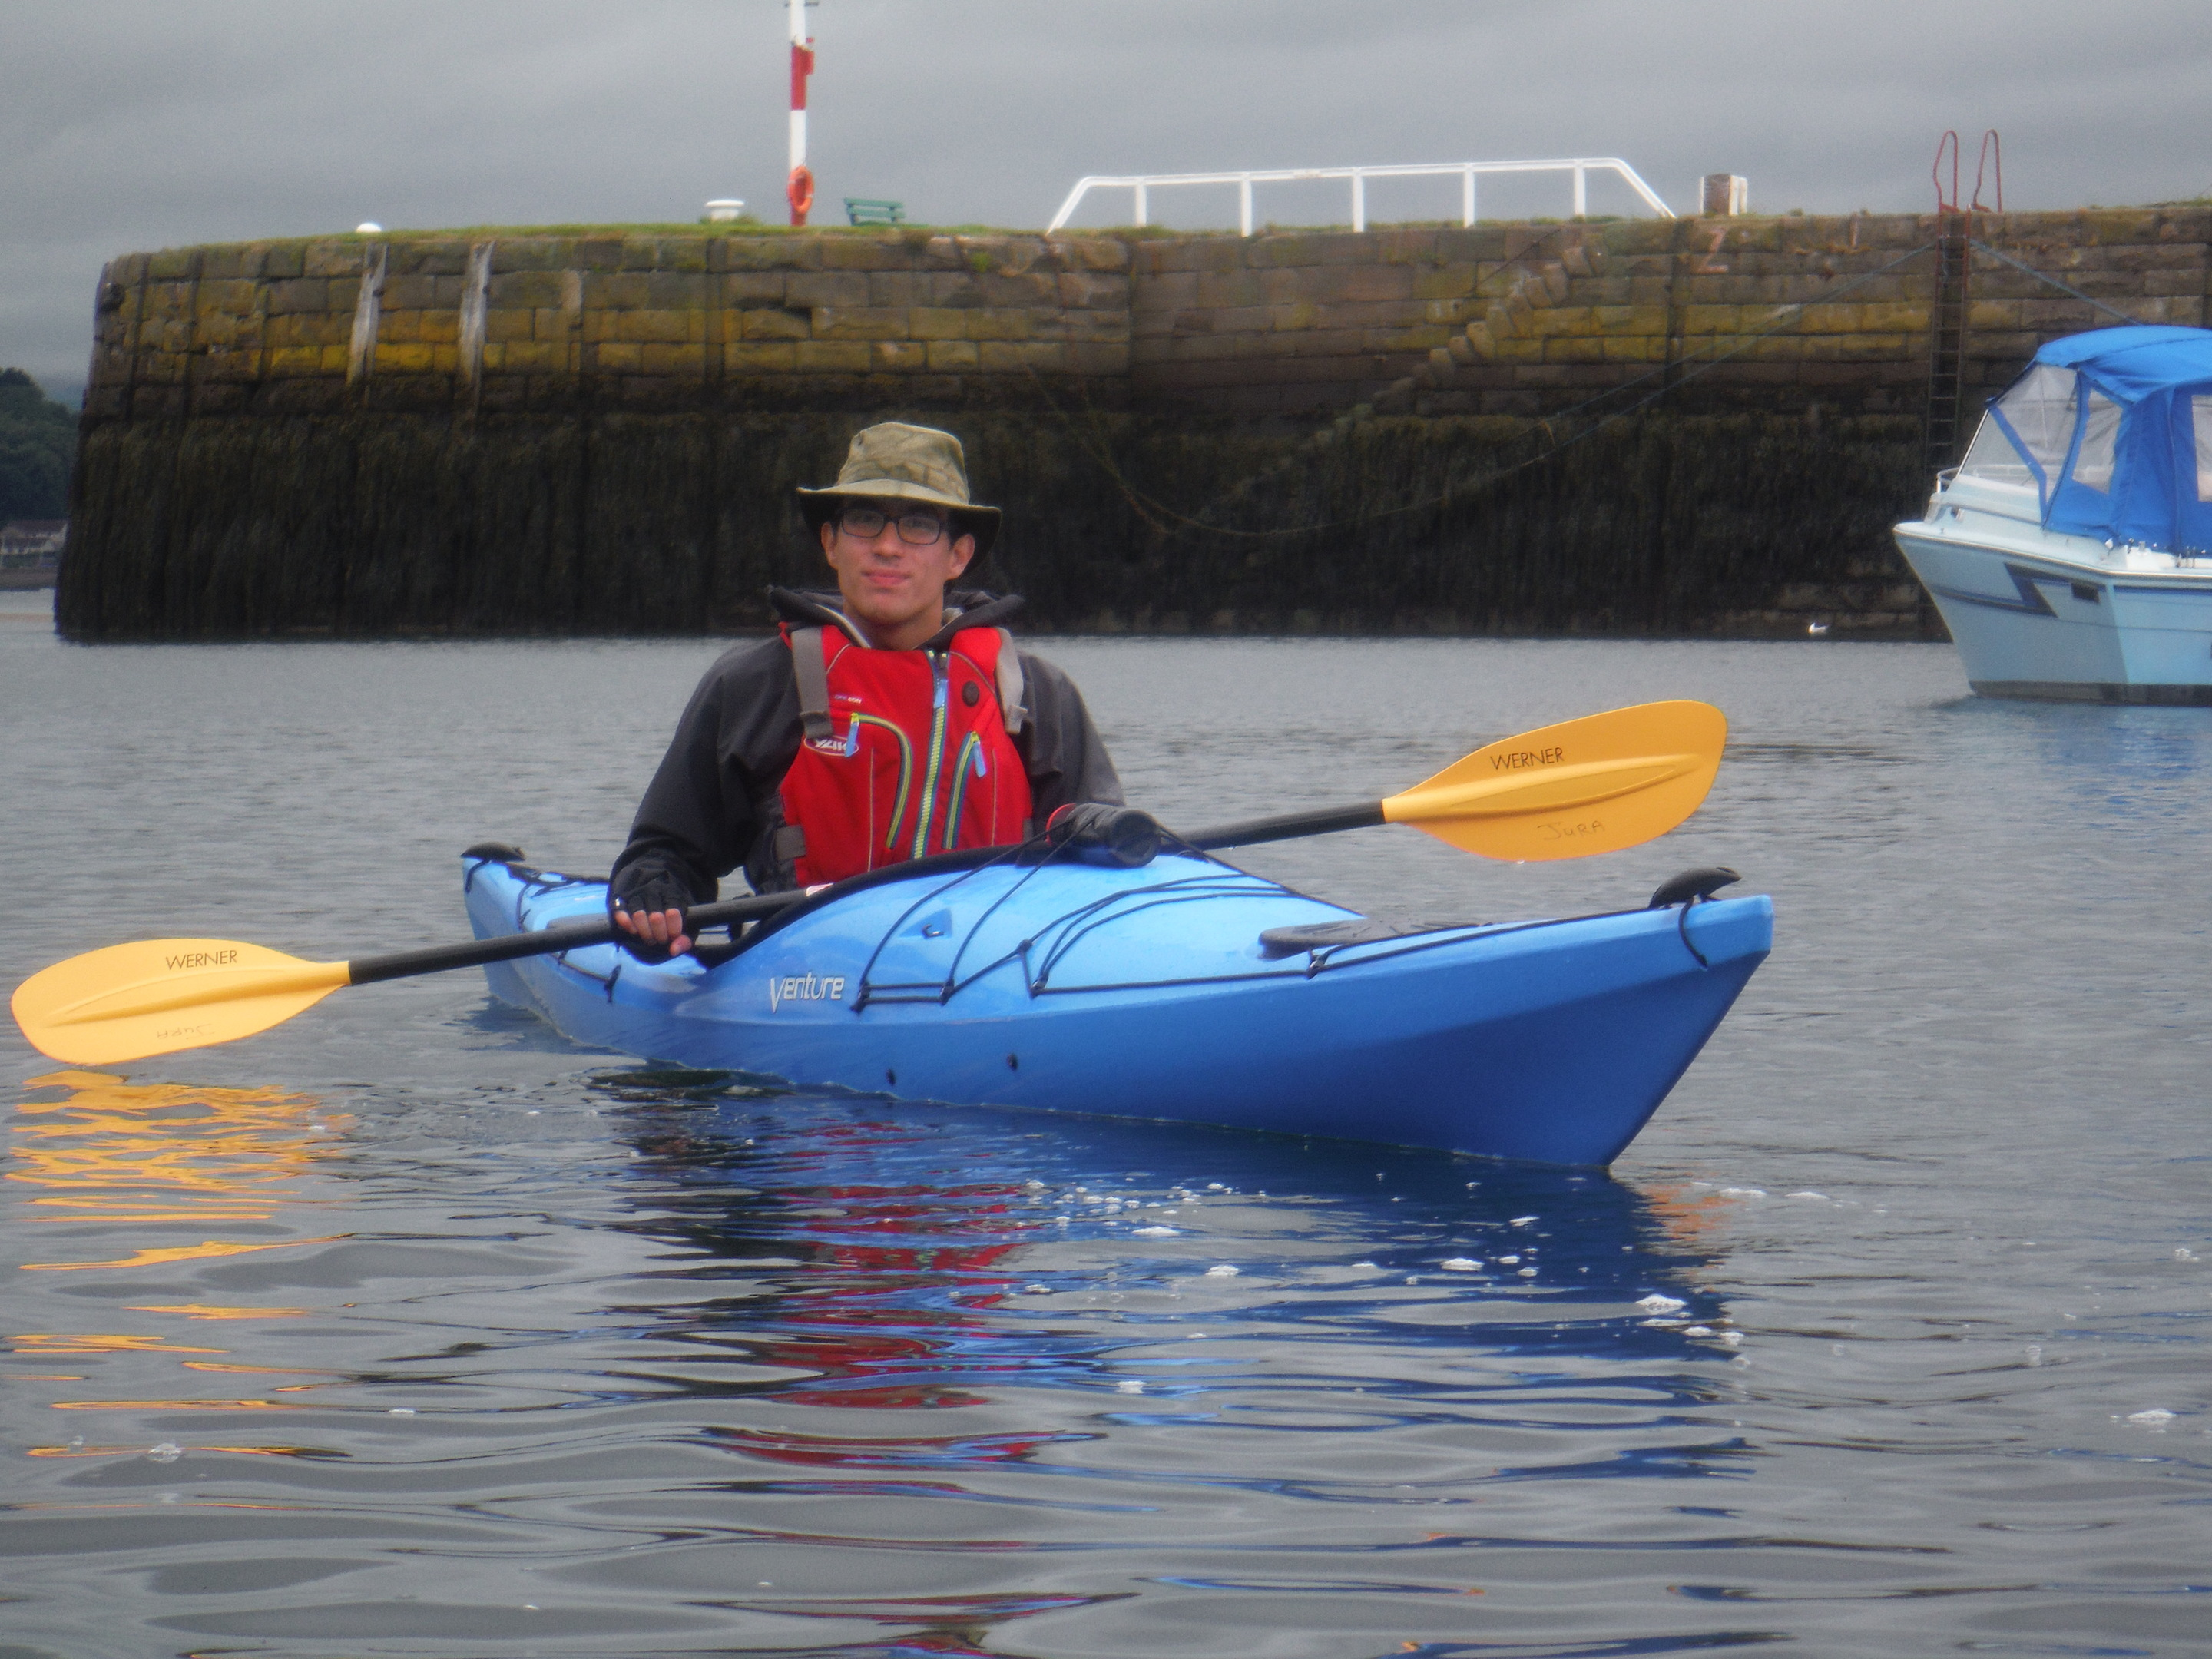 Daniel Gibson's paddle has raised well over £1100 for a worthy cause so far.